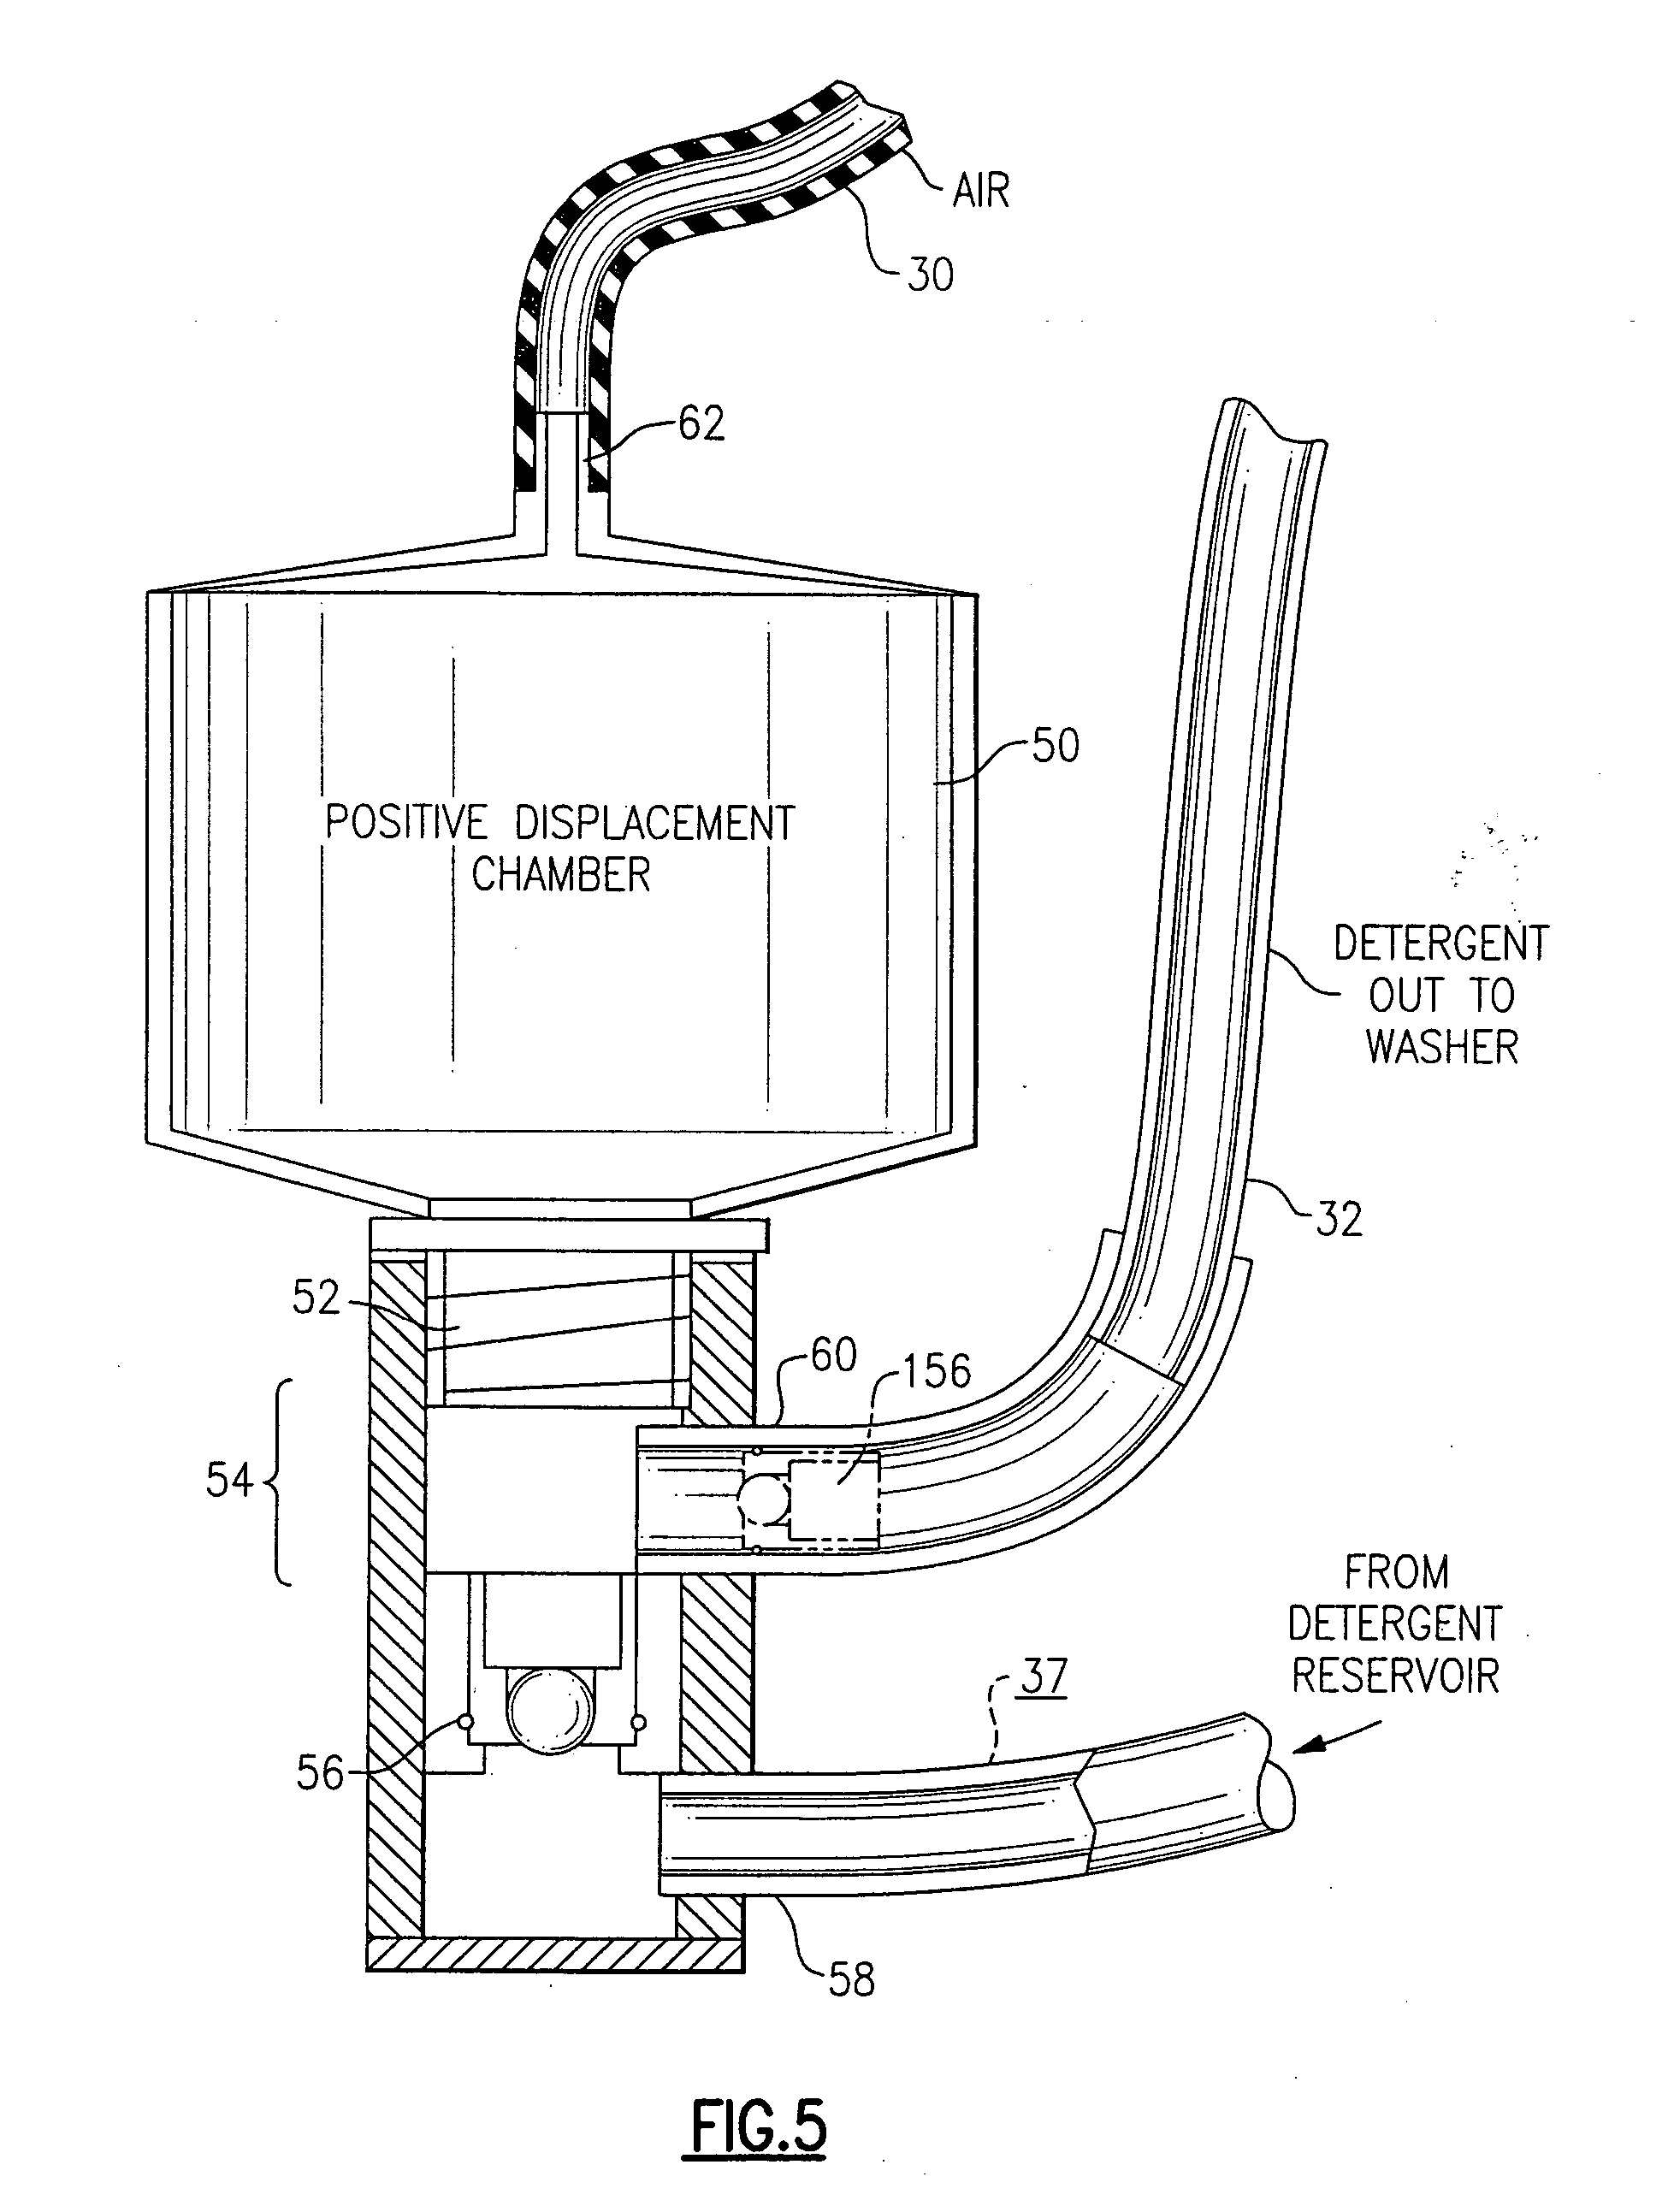 patent us20060117811 - liquid detergent dispensing system for automatic washer